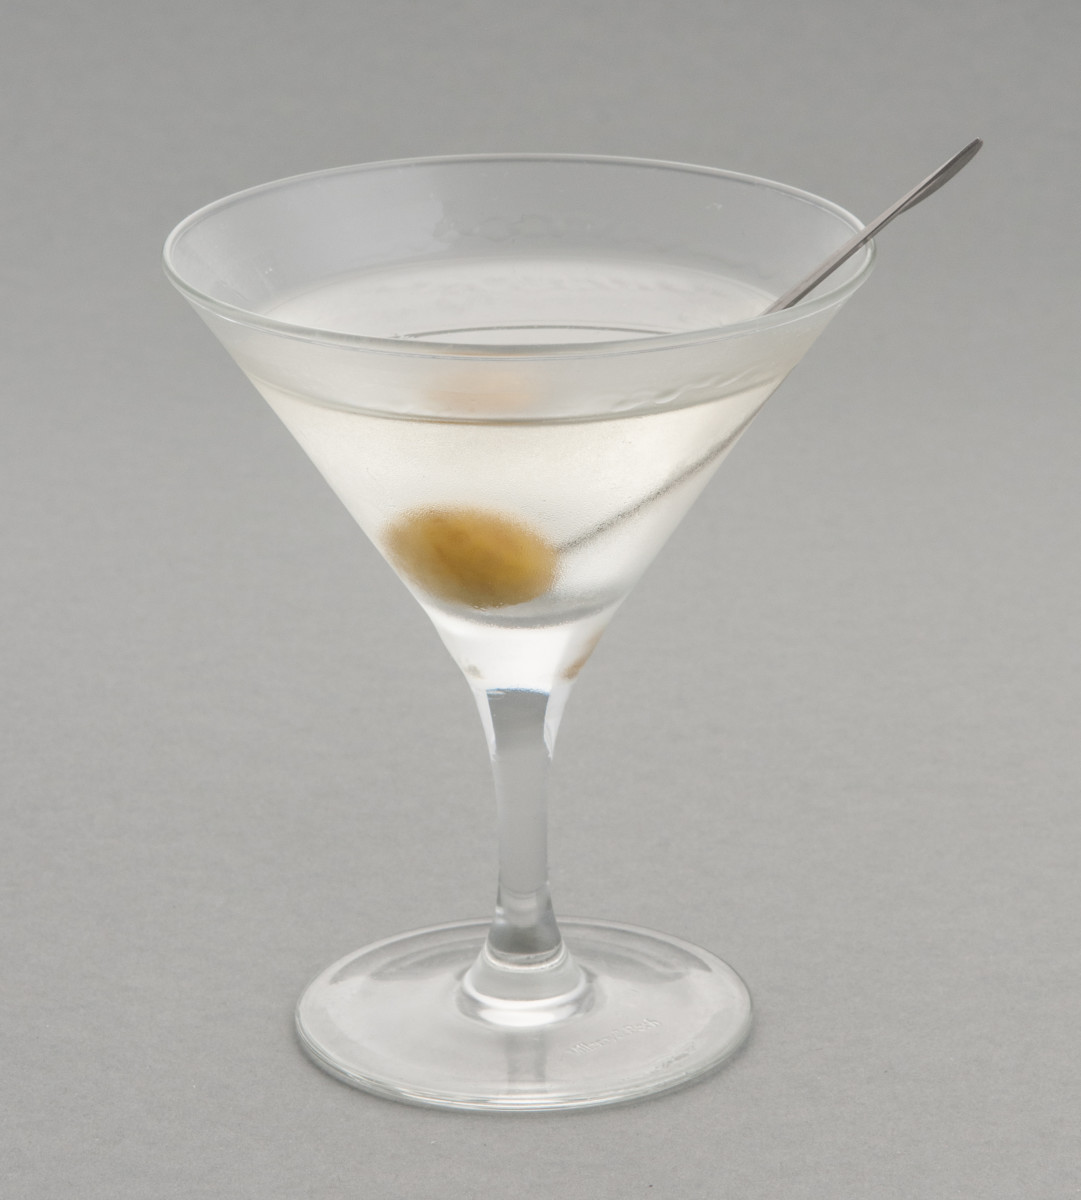 How to Make a Great Martini